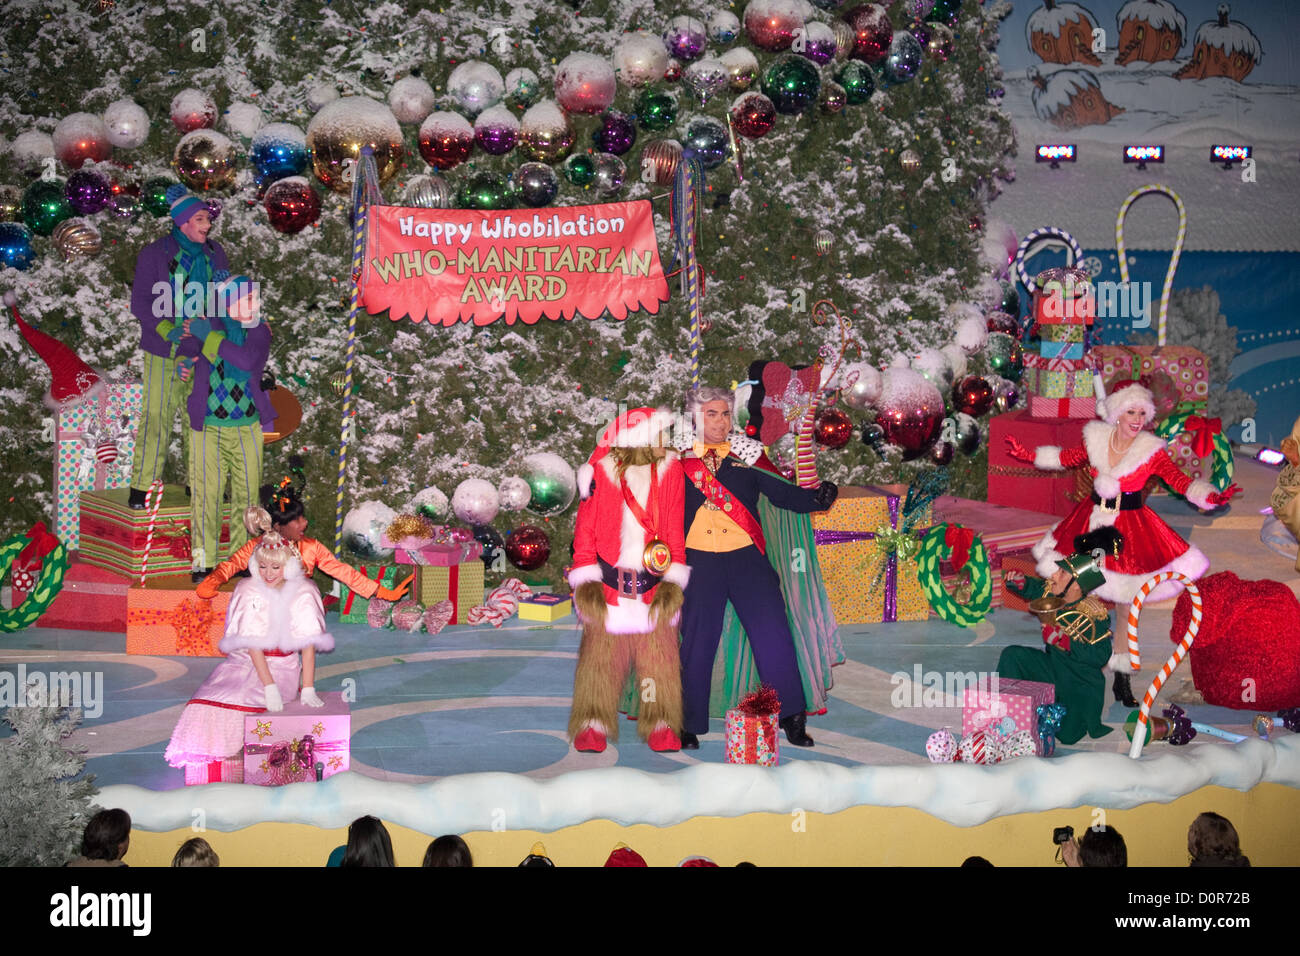 The Grinch performing with the Whos in Whoville at Grinchmas at Universal Studios Hollywood in Los